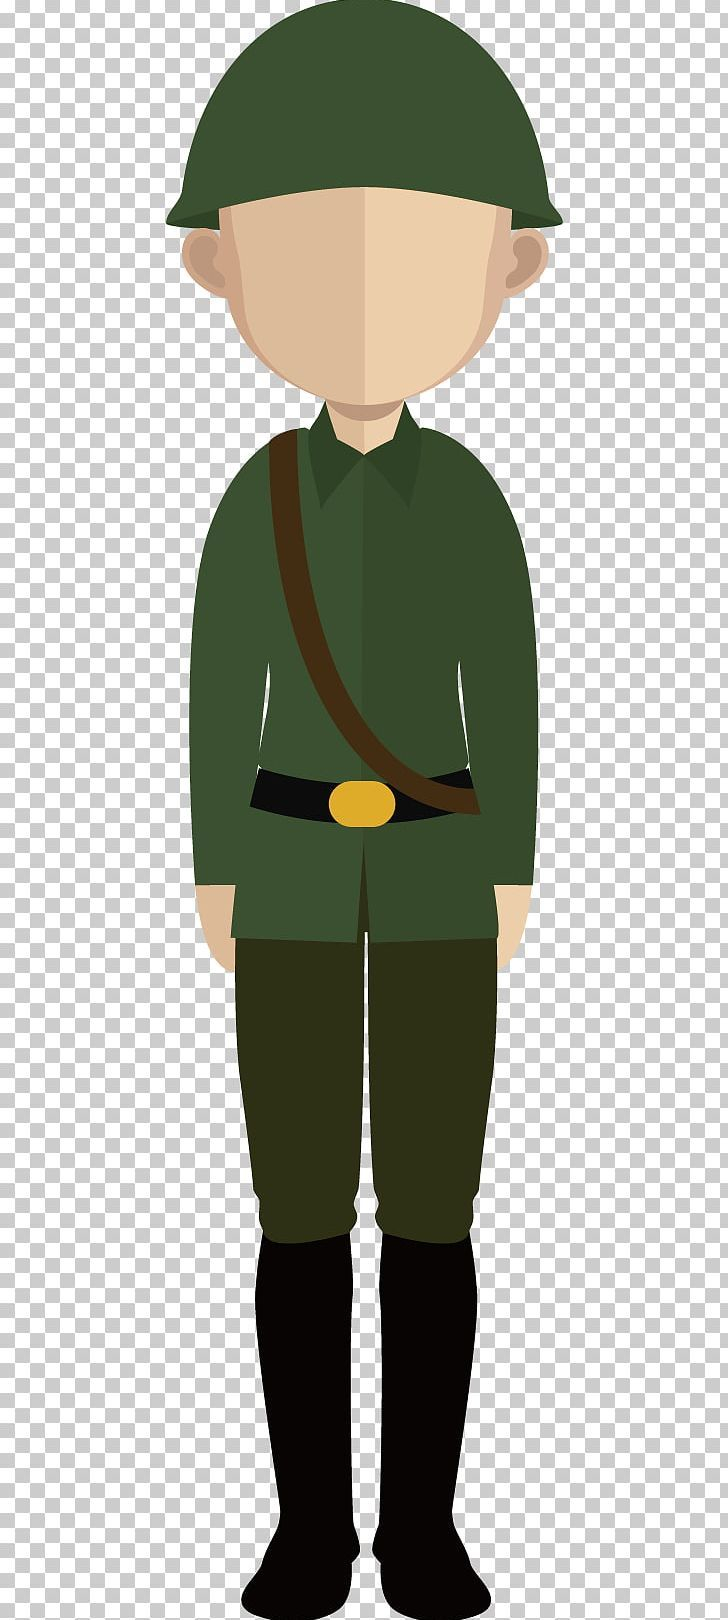 Drawing Army Animation Illustration Png Army Soldiers Army Texture Army Vector Cartoon Dessin Animxc3xa9 Animation Illustration Drawings